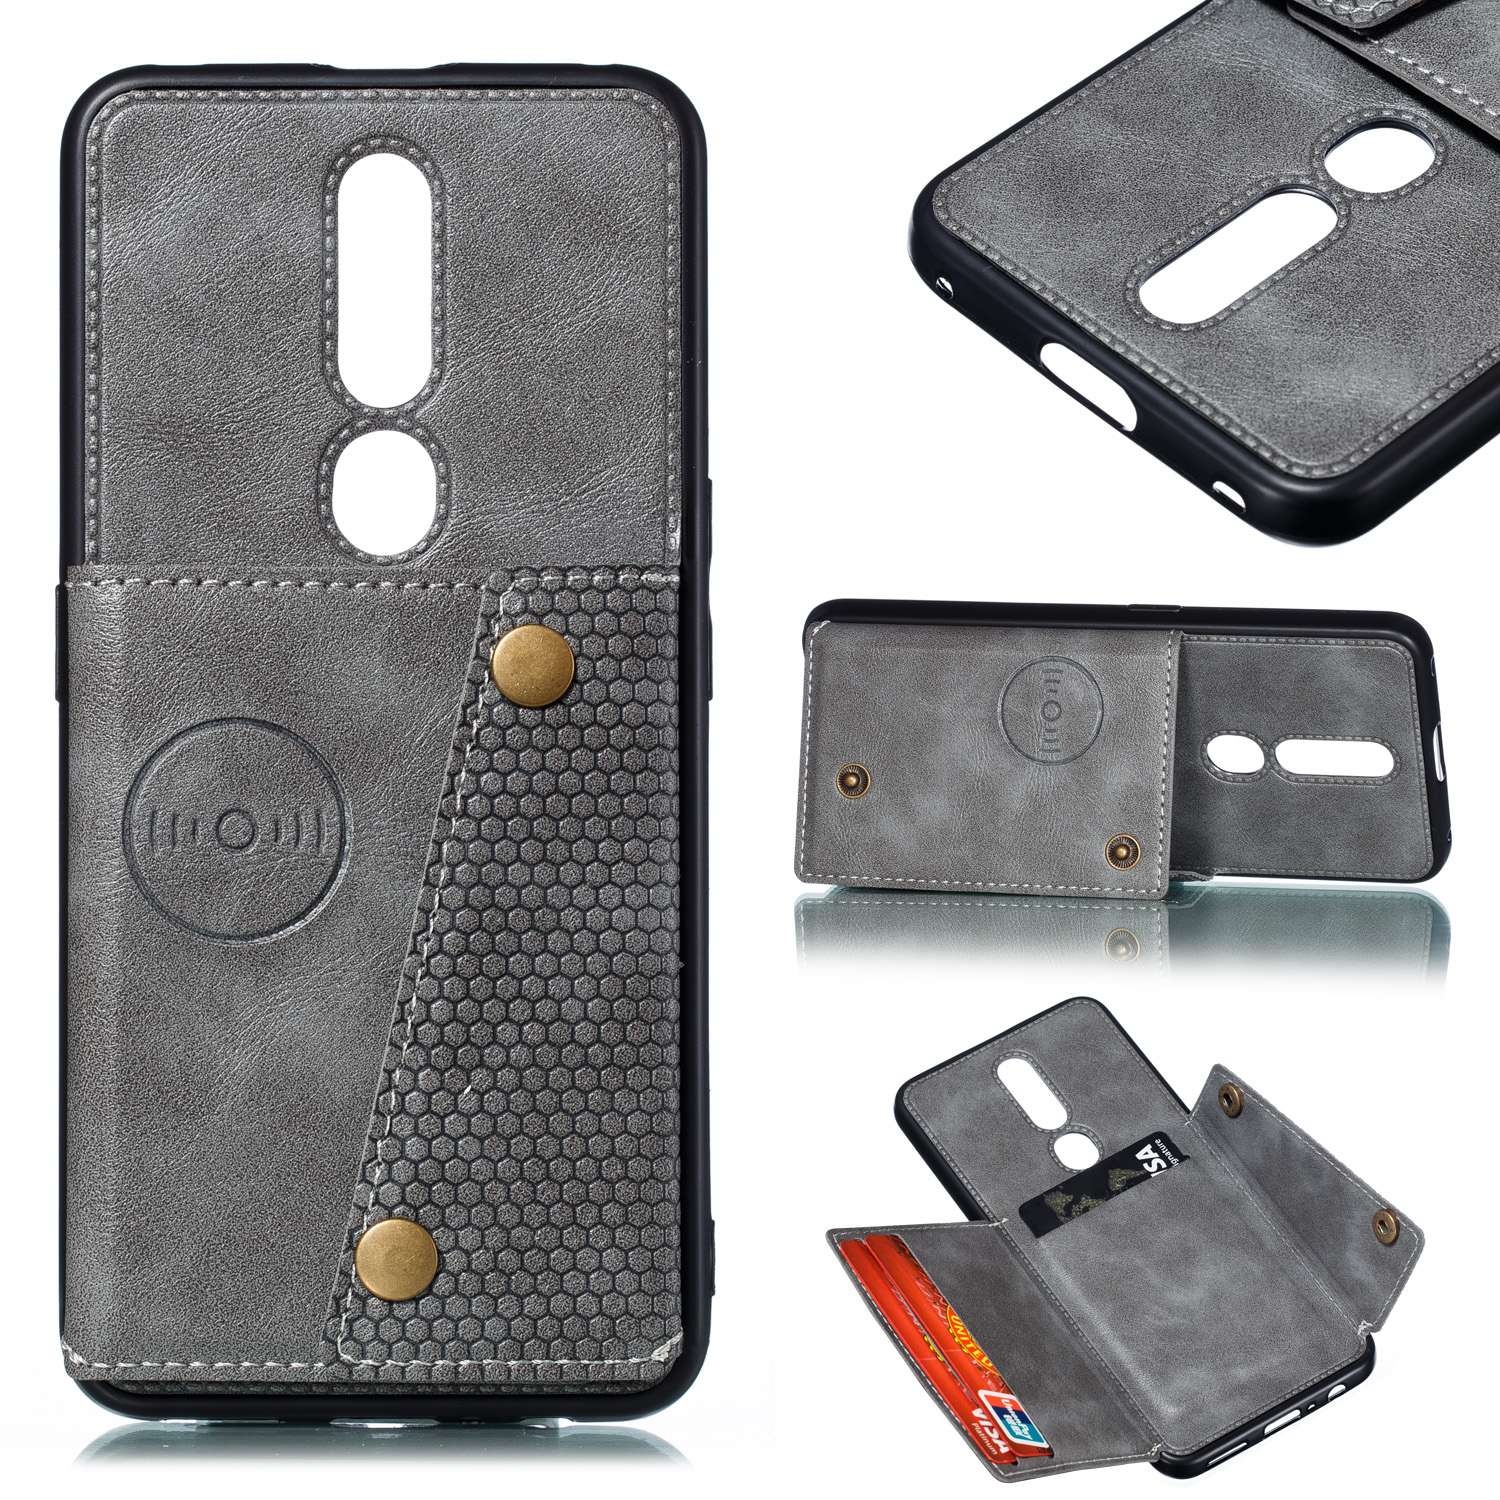 For OPPO F11 pro PU Leather Flip Stand Shockproof Cell Phone Cover Double Buckle Anti-dust Case With Card Slots Pocket gray